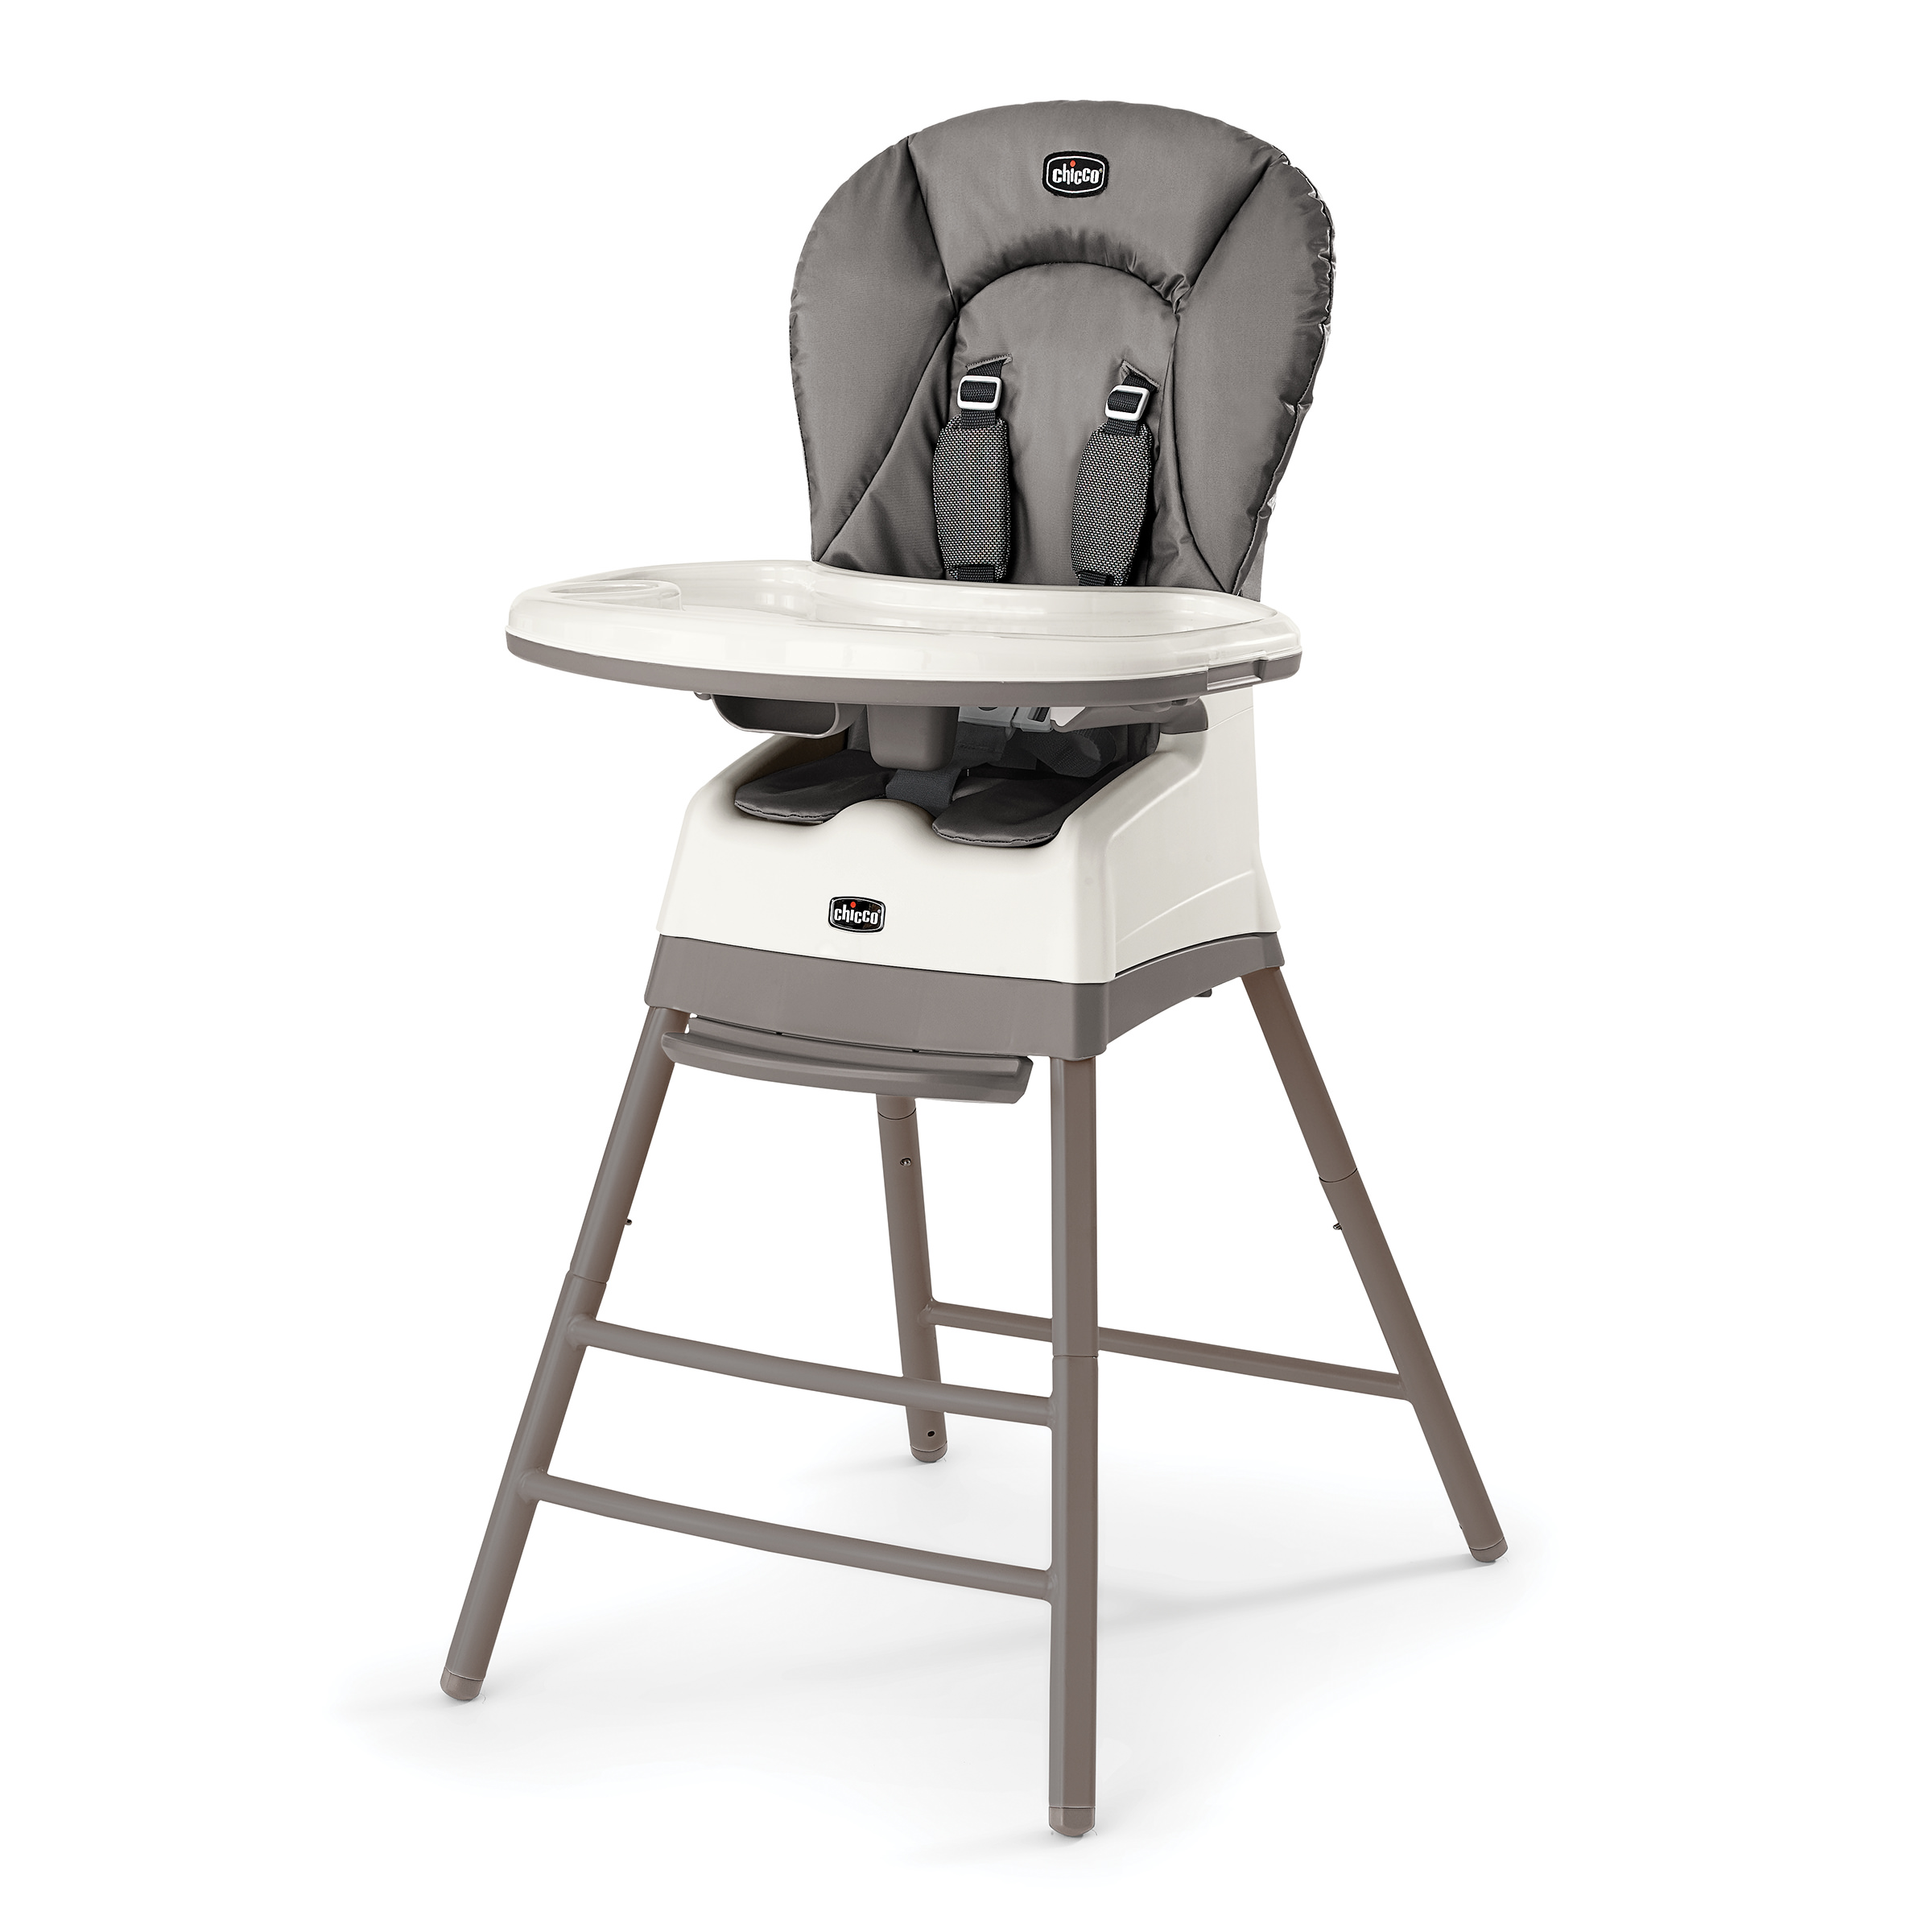 Chicco Stack 3-in-1 High Chair, Dune